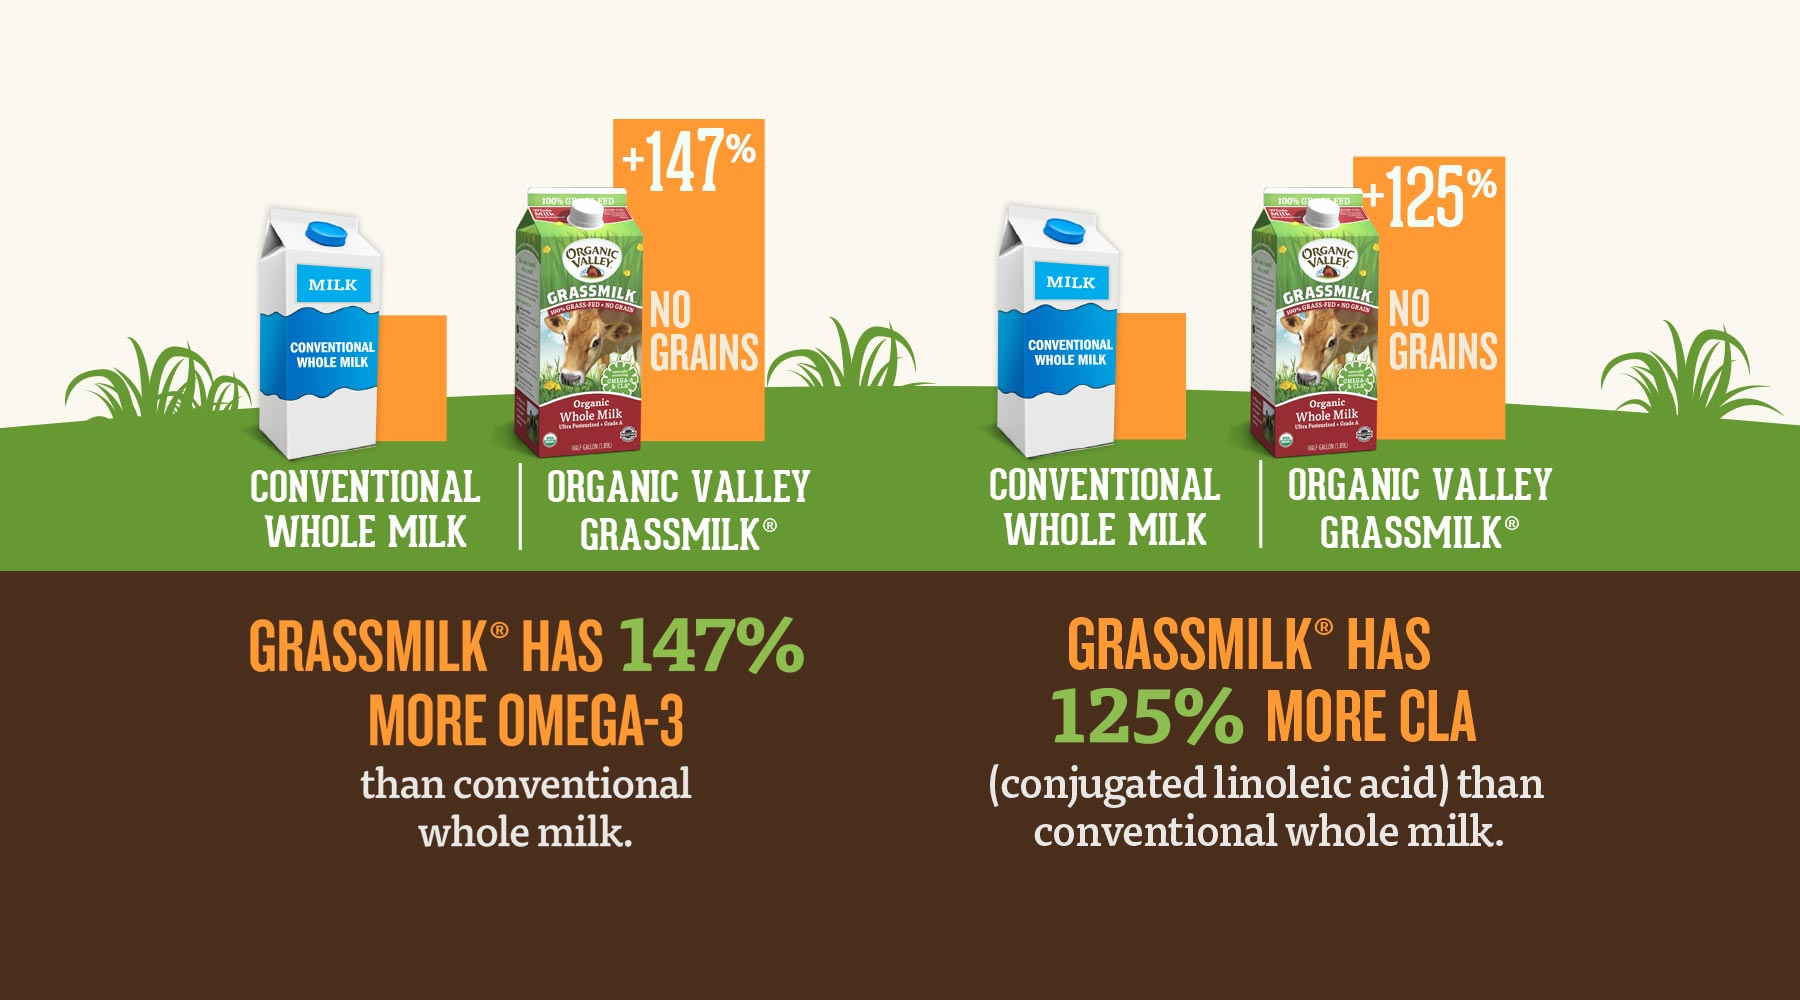 Chart showing the difference in omega-3 and CLA content between conventional milk and Organic Valley Grassmilk.